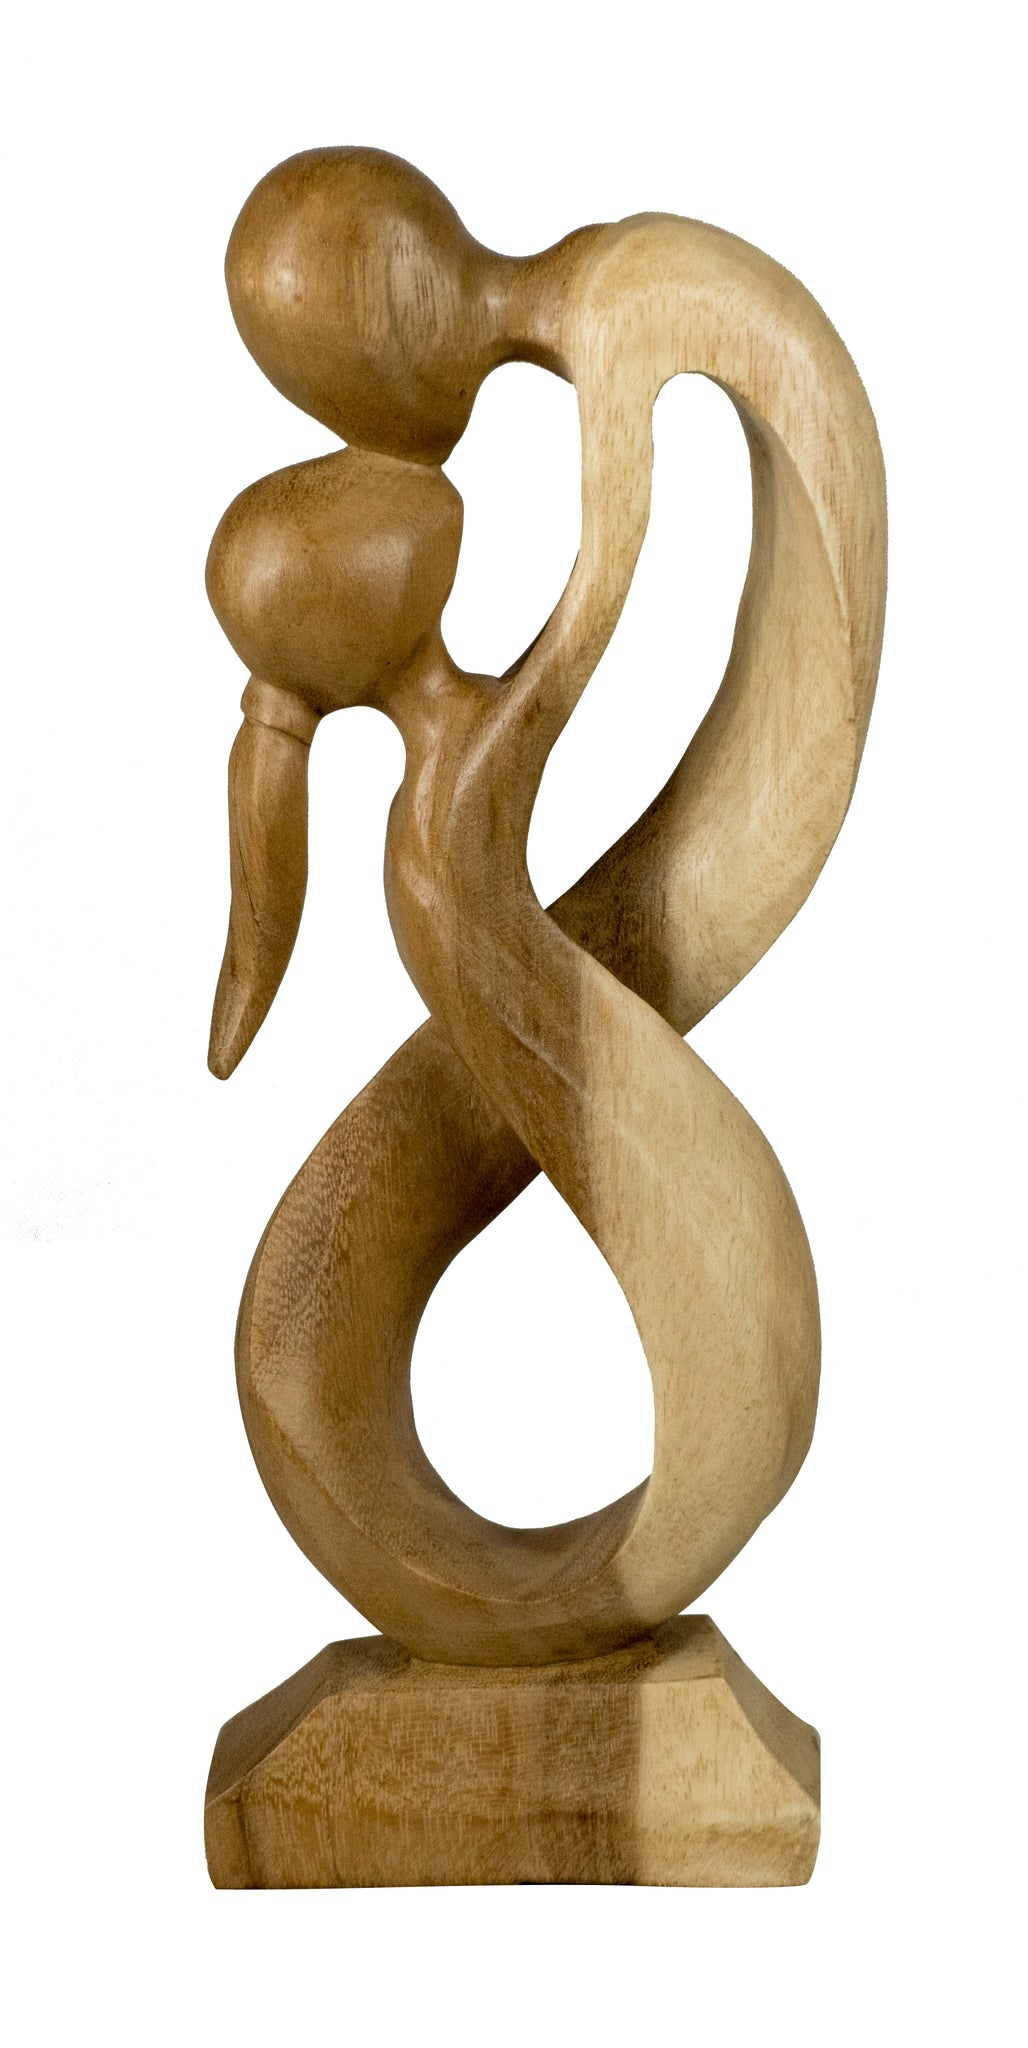 Lovers Entwined Wooden Carving